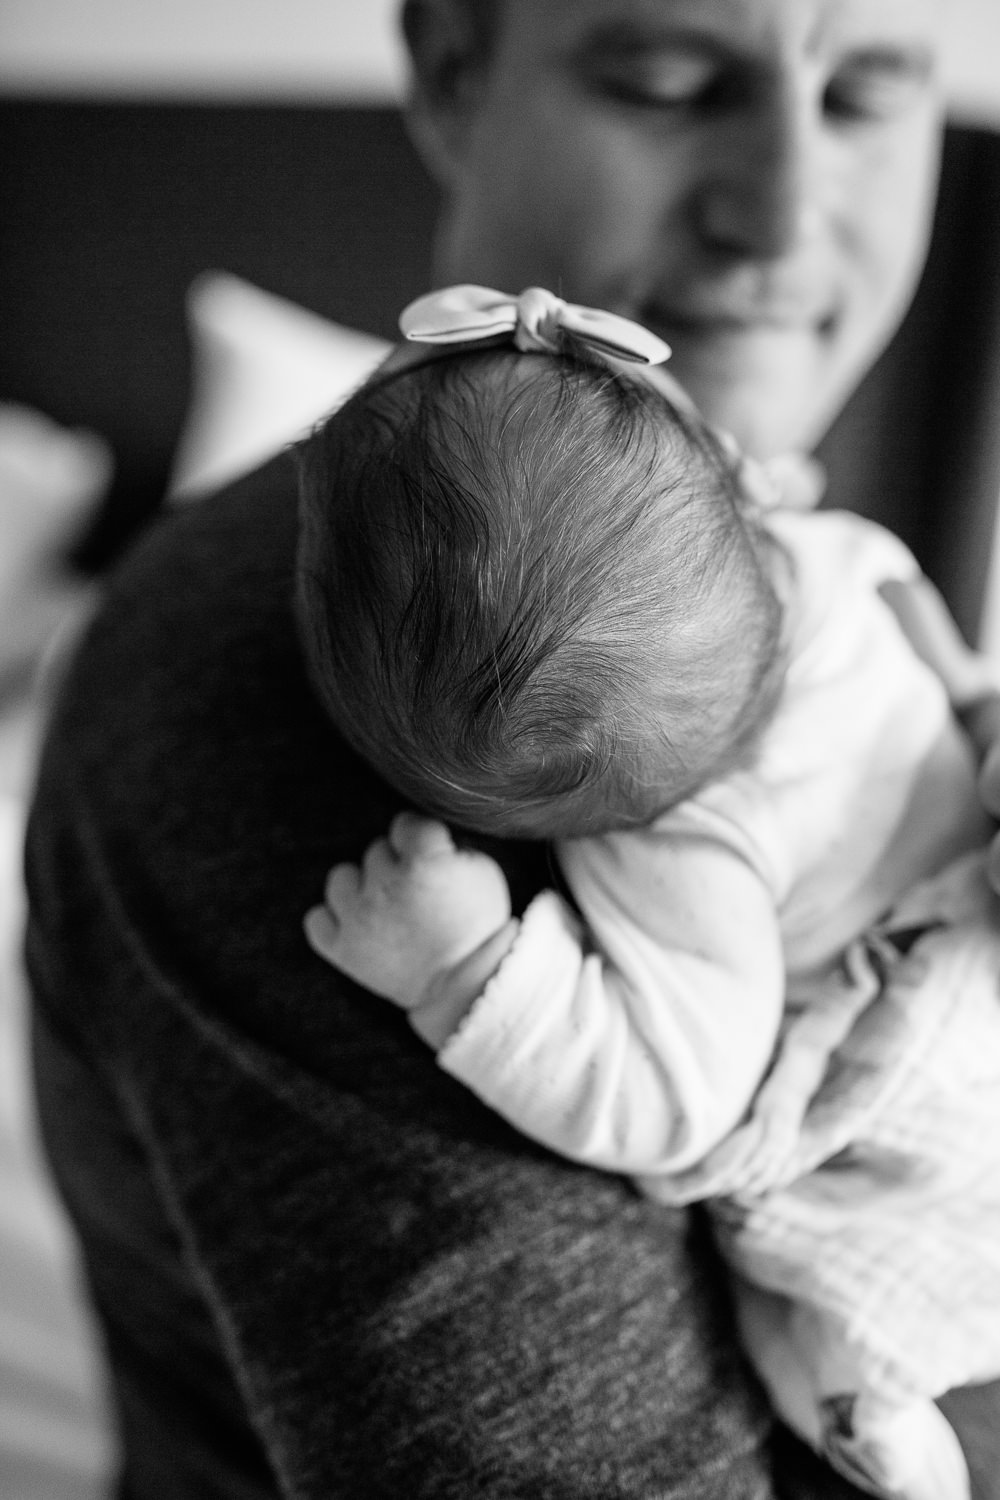 dad sitting on edge of bed holding 2 week old baby girl in onesie and  swaddle, sleeping on father's shoulder, close up of hair - GTA In-Home Photography